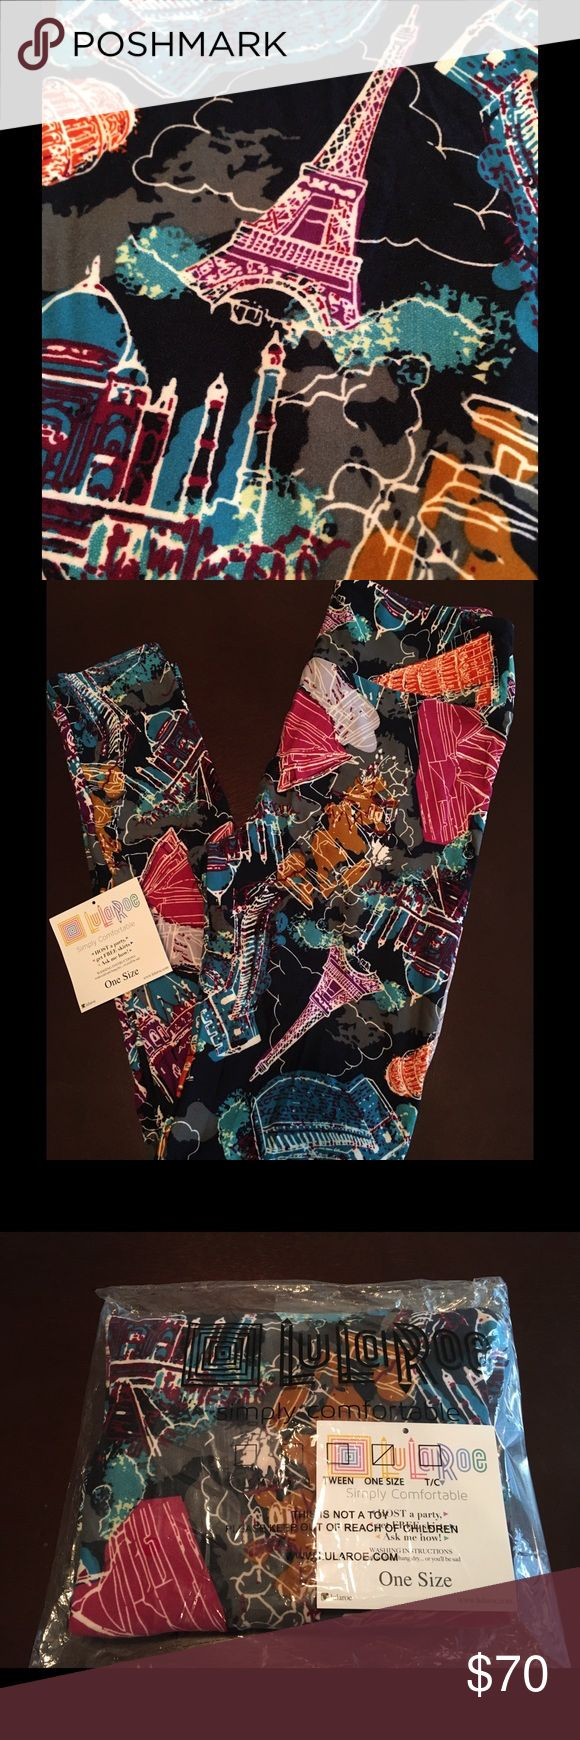 LULAROE OS Landmarks leggings Europe Buildings Brand new with tag. From SF/PF home.   Amazing UNICORN print One Size leggings.  Black background with City buildings, famous monuments like Big Ben, Statue of Liberty, Leaning tower of Pisa.  Perfect for the traveler!  I SHIP OUT FAST. CHECK MY REVIEWS!  **Less on Ⓜ️ercari** LuLaRoe Pants Leggings